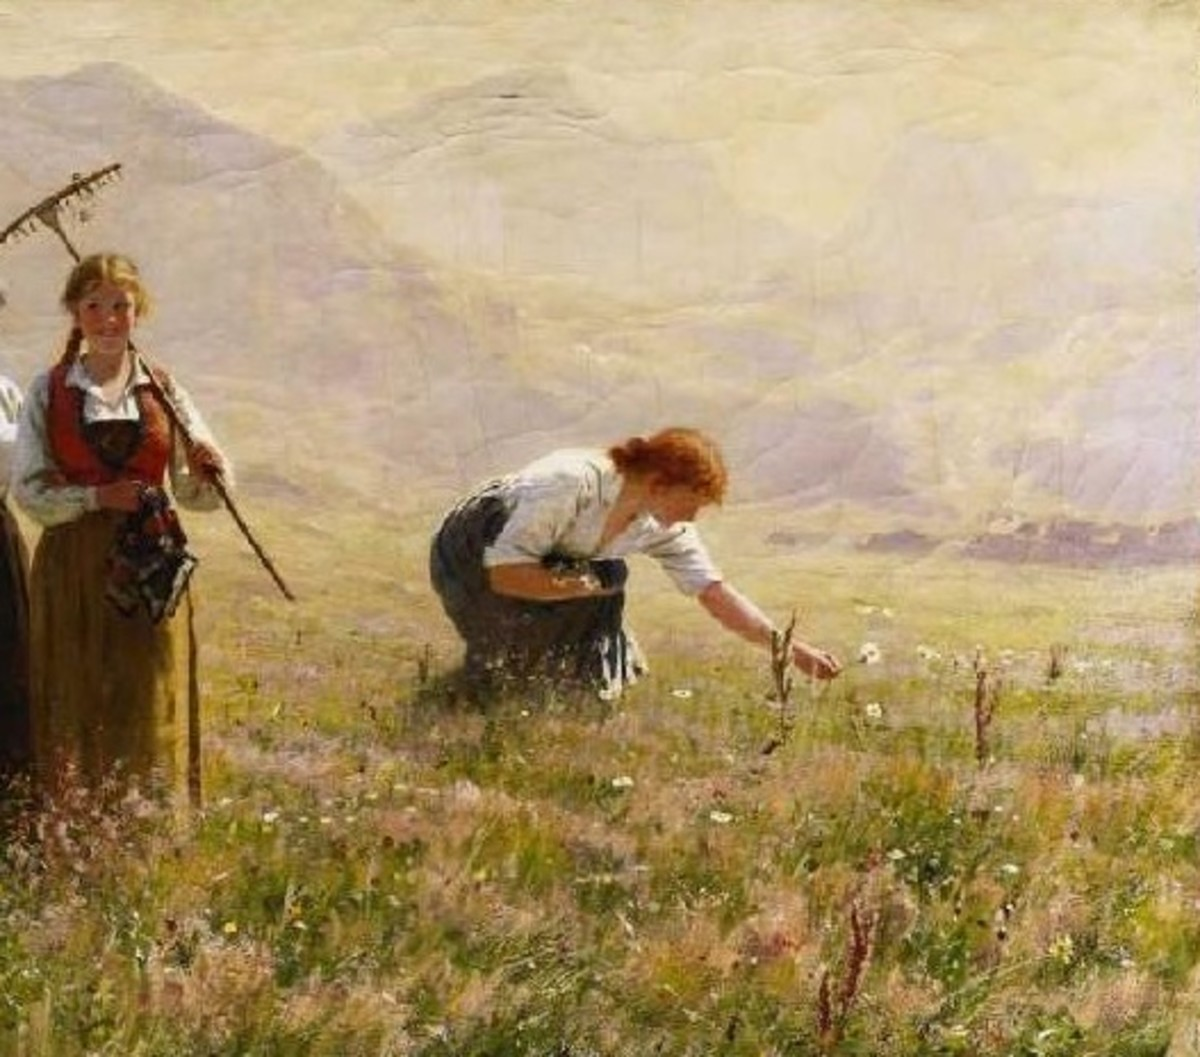 A woman gathers wildflowers in a field. Art by Hans Dahl.